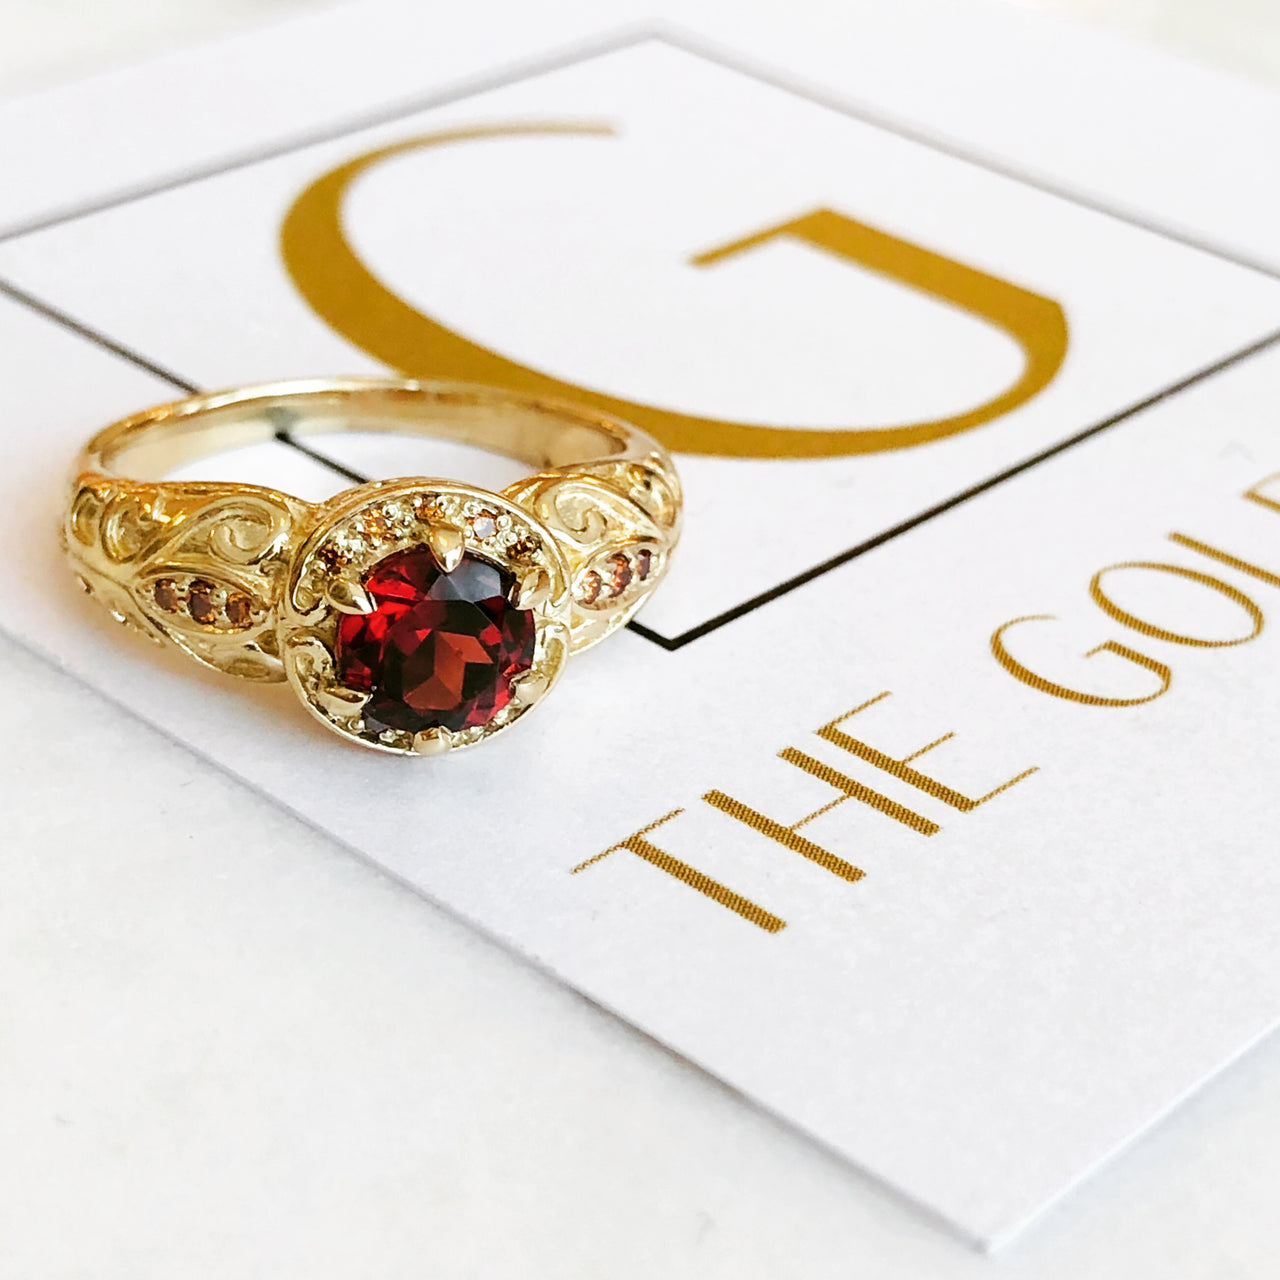 14K Yellow Gold Garnet Ring.